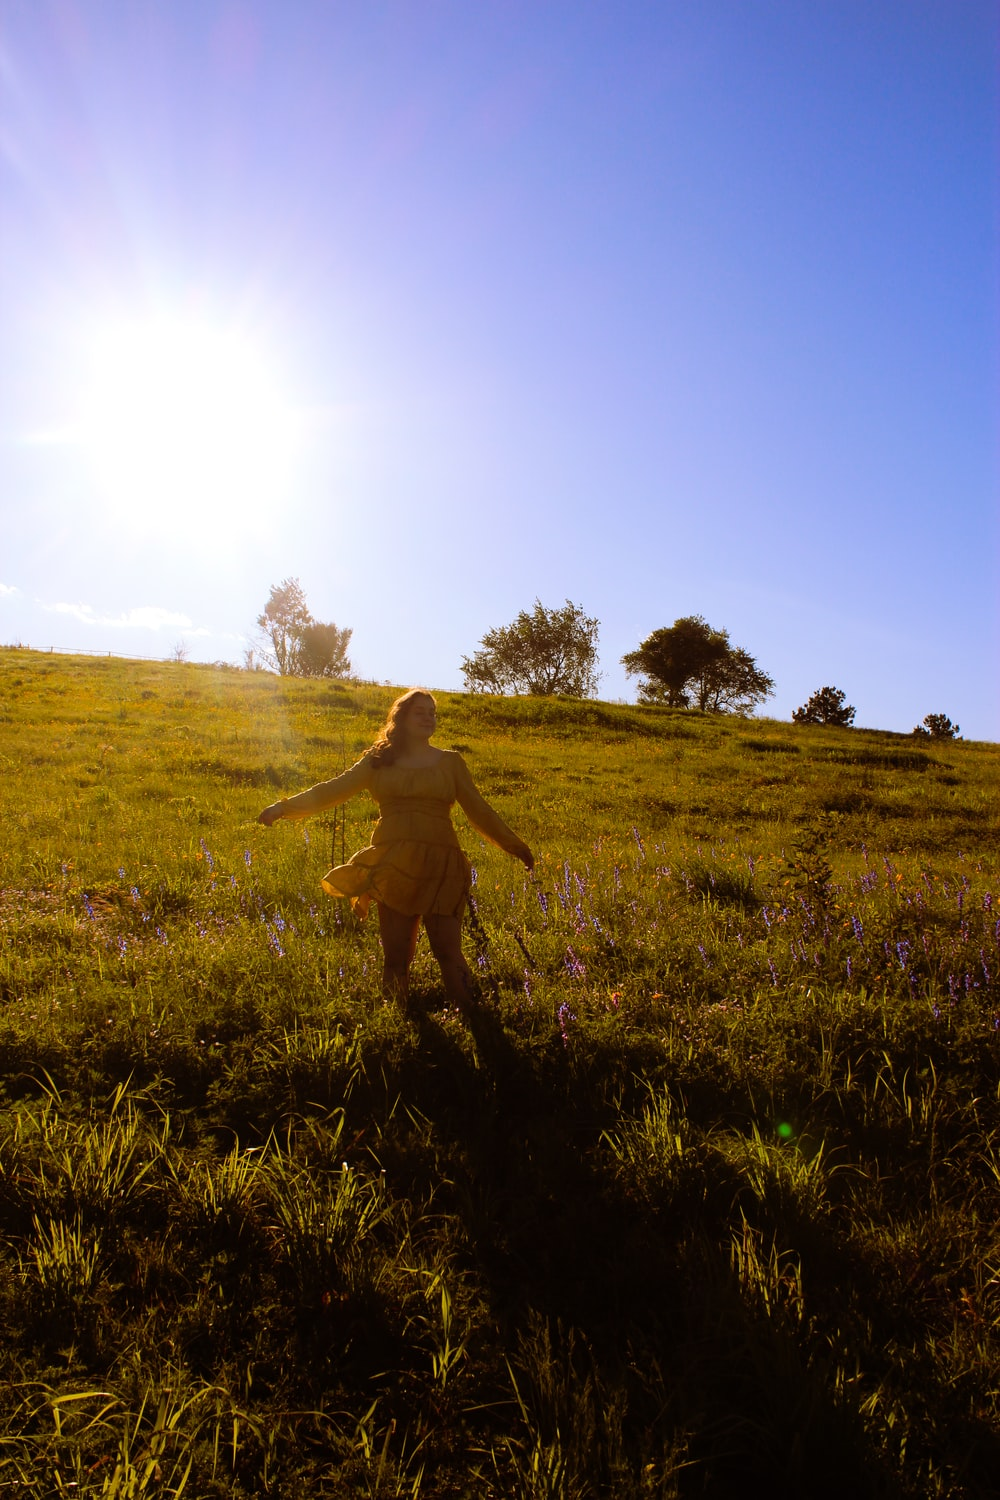 woman in brown dress walking on green grass field during daytime